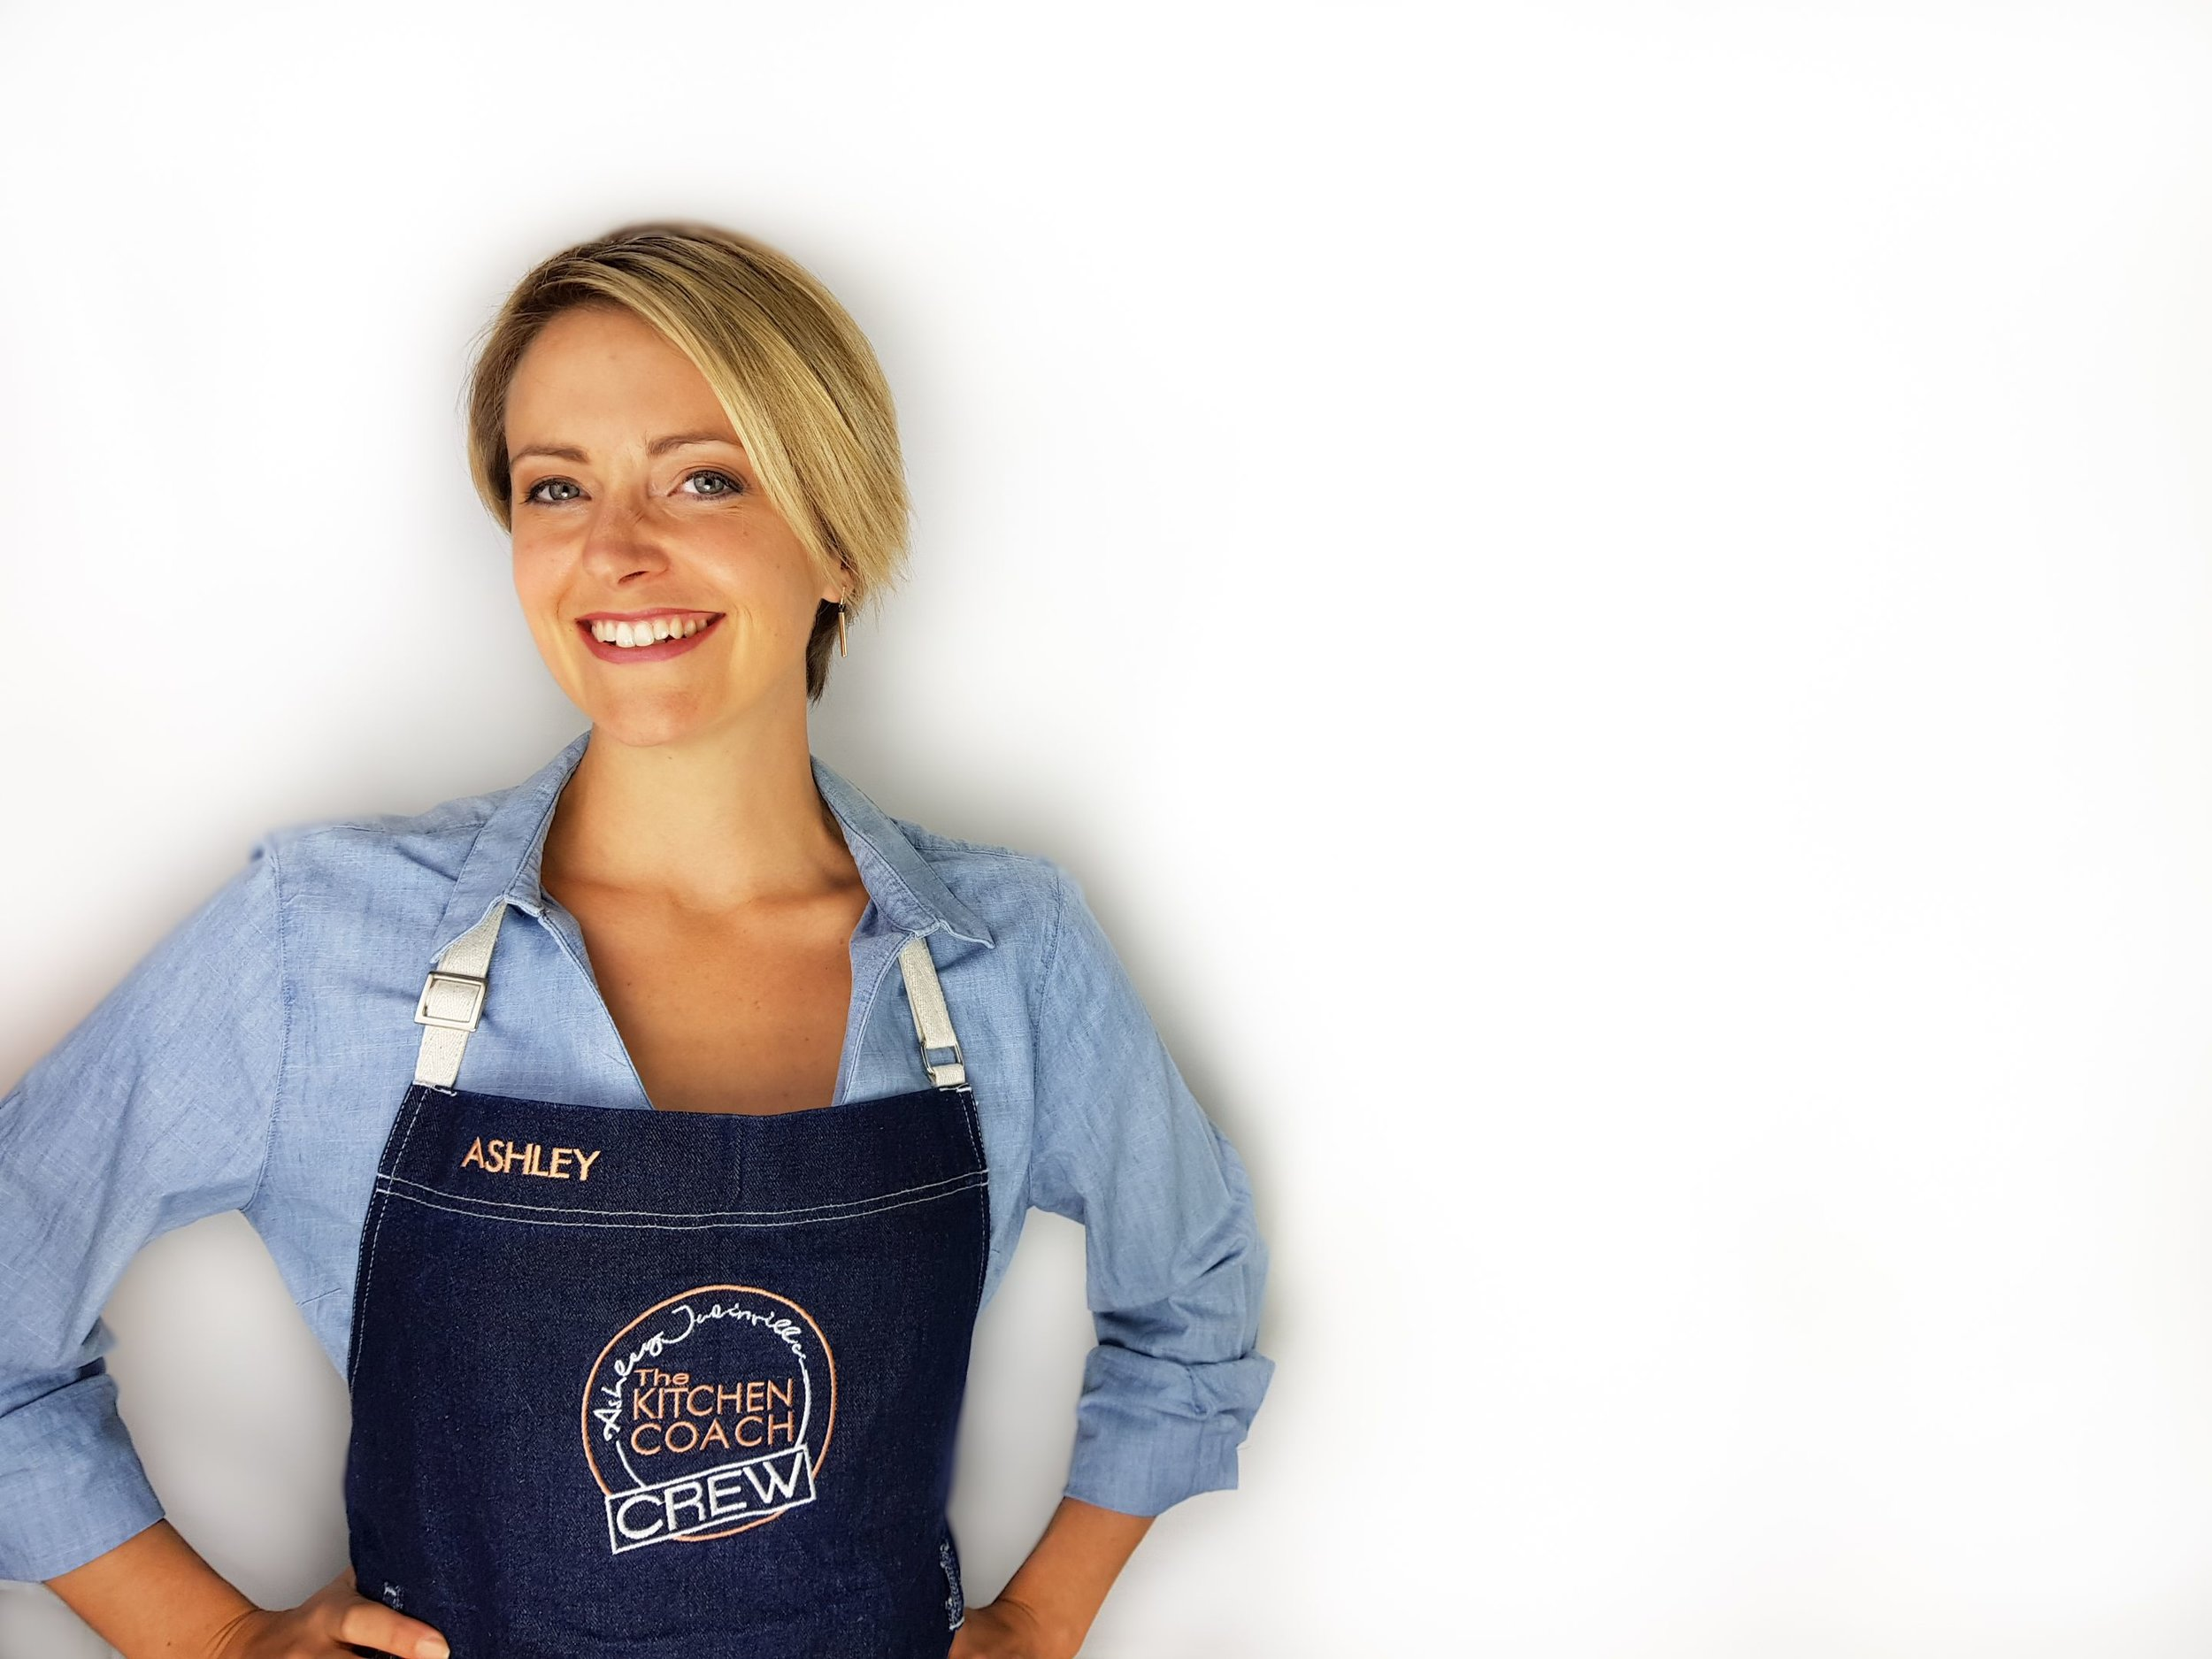 Hi there! - I'm Ashley, The Kitchen Coach, I help families all around the world upgrade their world of food. I break down the complexity of kitchen skills, share how to shop for groceries smarter and teach simple time saving hacks that have already changed 1000's of lives! Discover my online programs and events below.